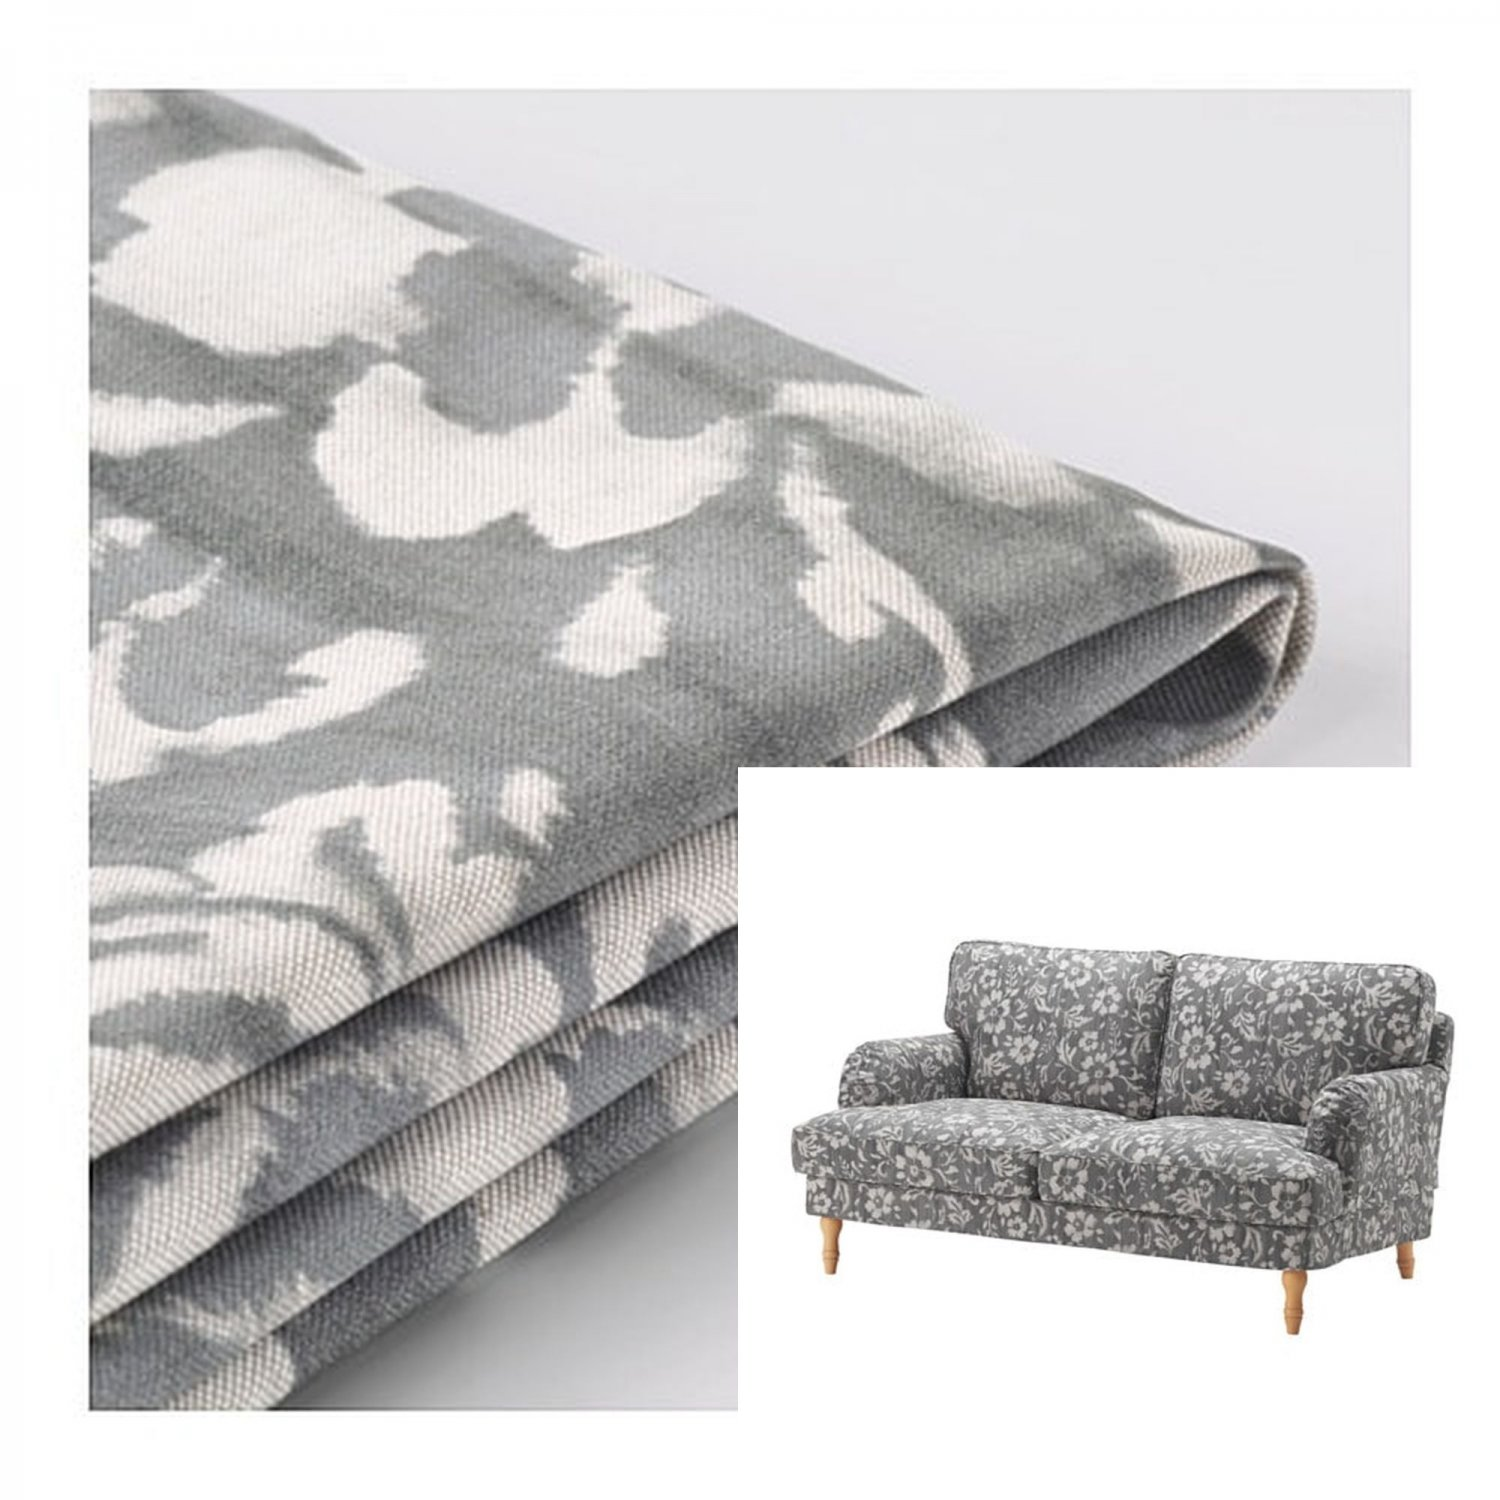 Grey Sofa Slipcover Ikea Stocksund 2 Seat Sofa Slipcover Loveseat Cover Hovsten Gray Floral Watercolour Effect Grey